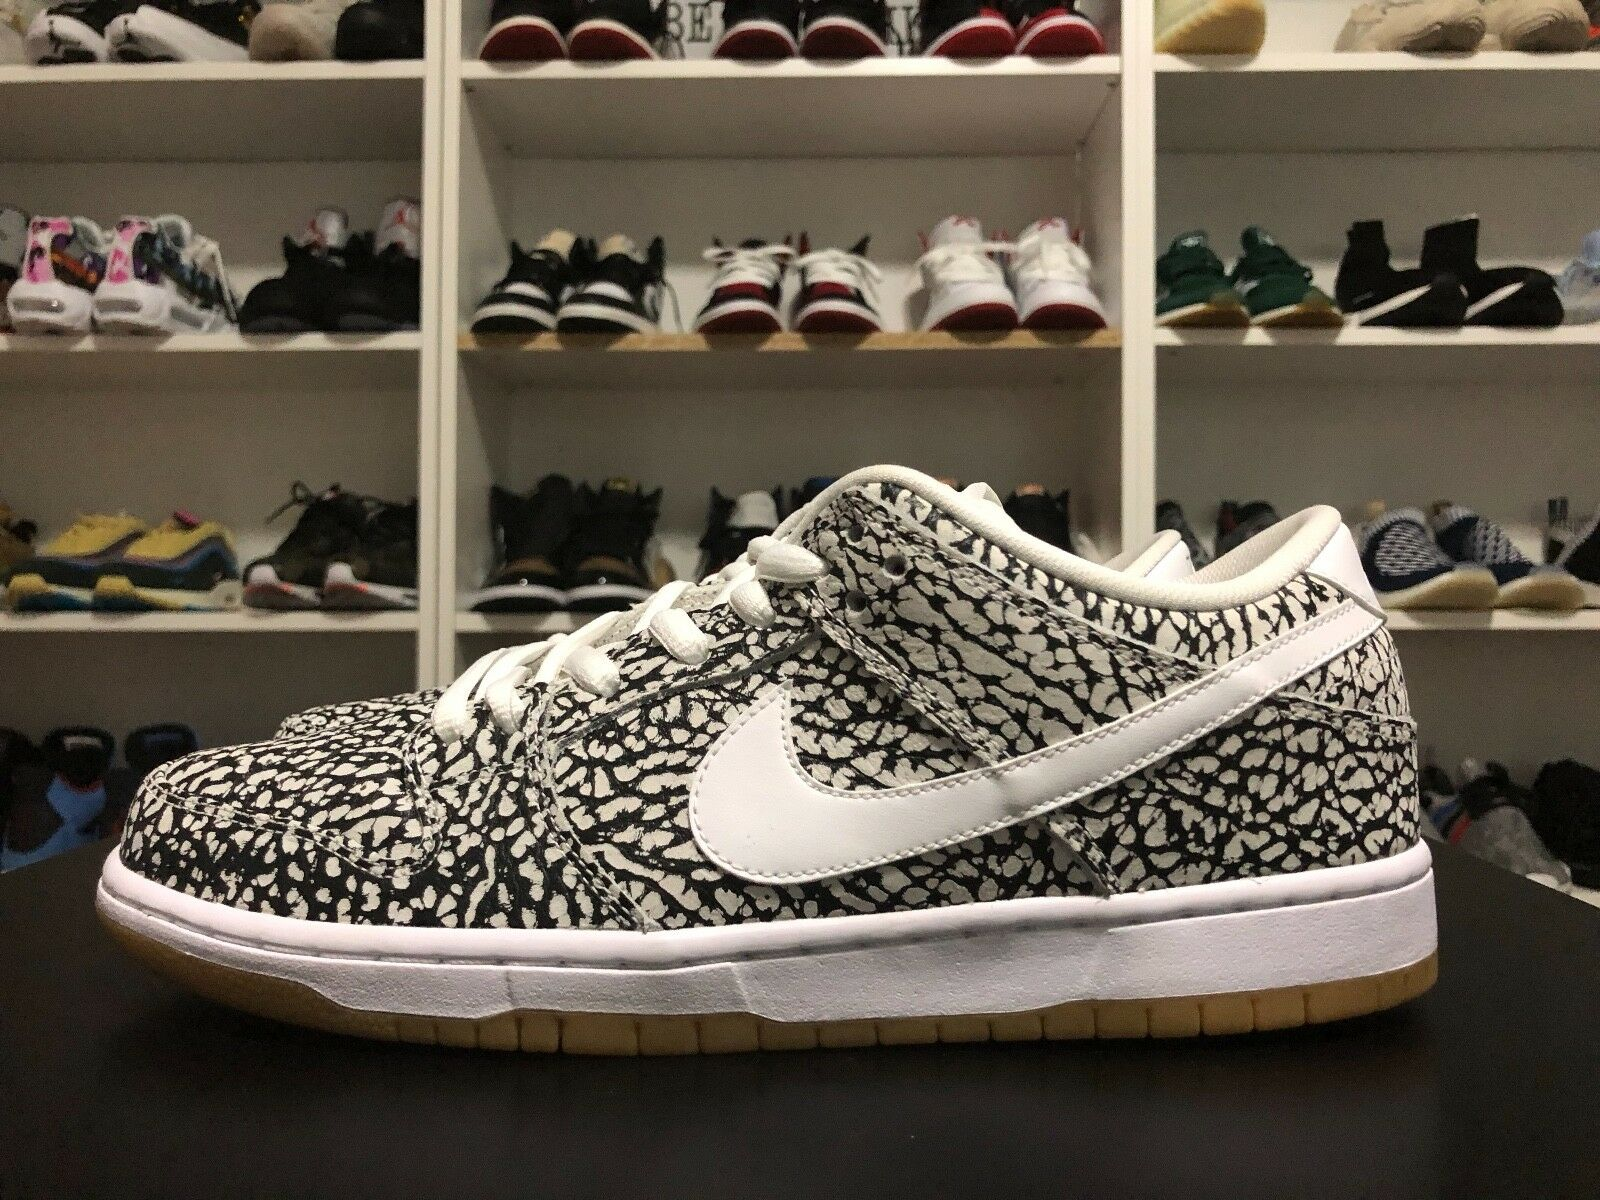 Deadstock Nike SB Dunk Premium  ROAD PACK  SALE Last Pair 10.5